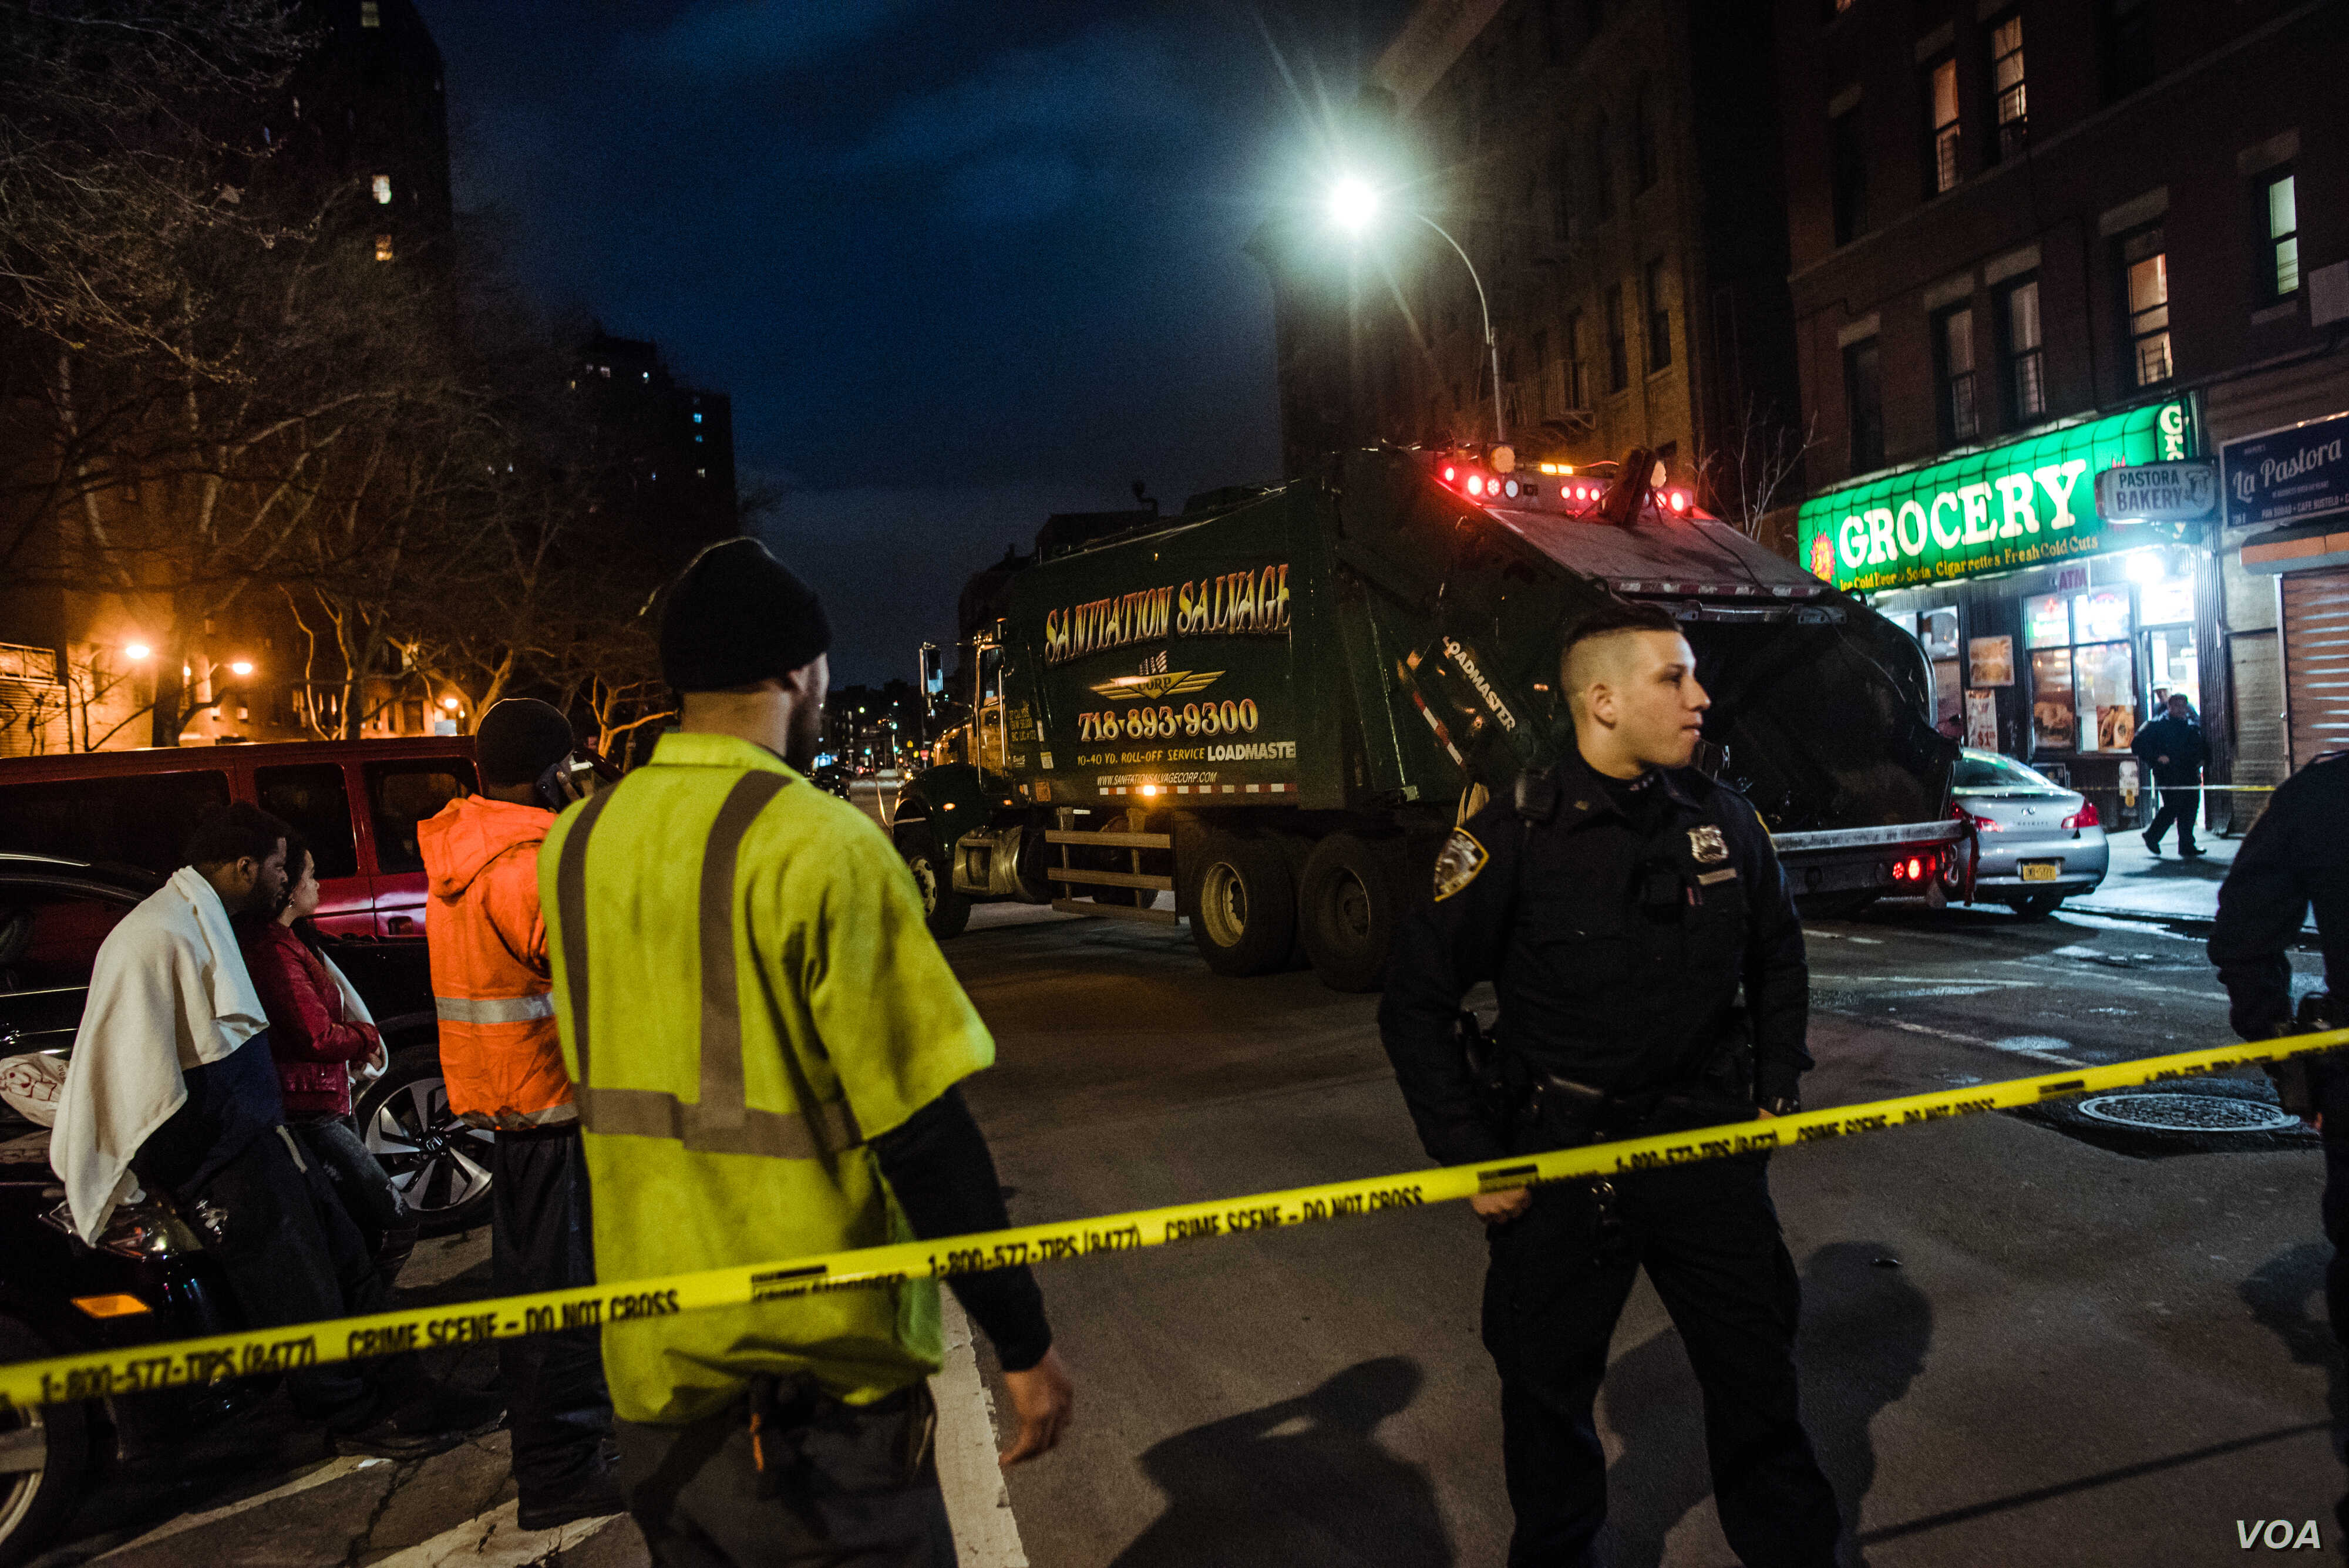 A Sanitation Salvage truck behind police tape at 152nd Street and Jackson Ave. in Woodstock, Bronx, April 27, 2018.